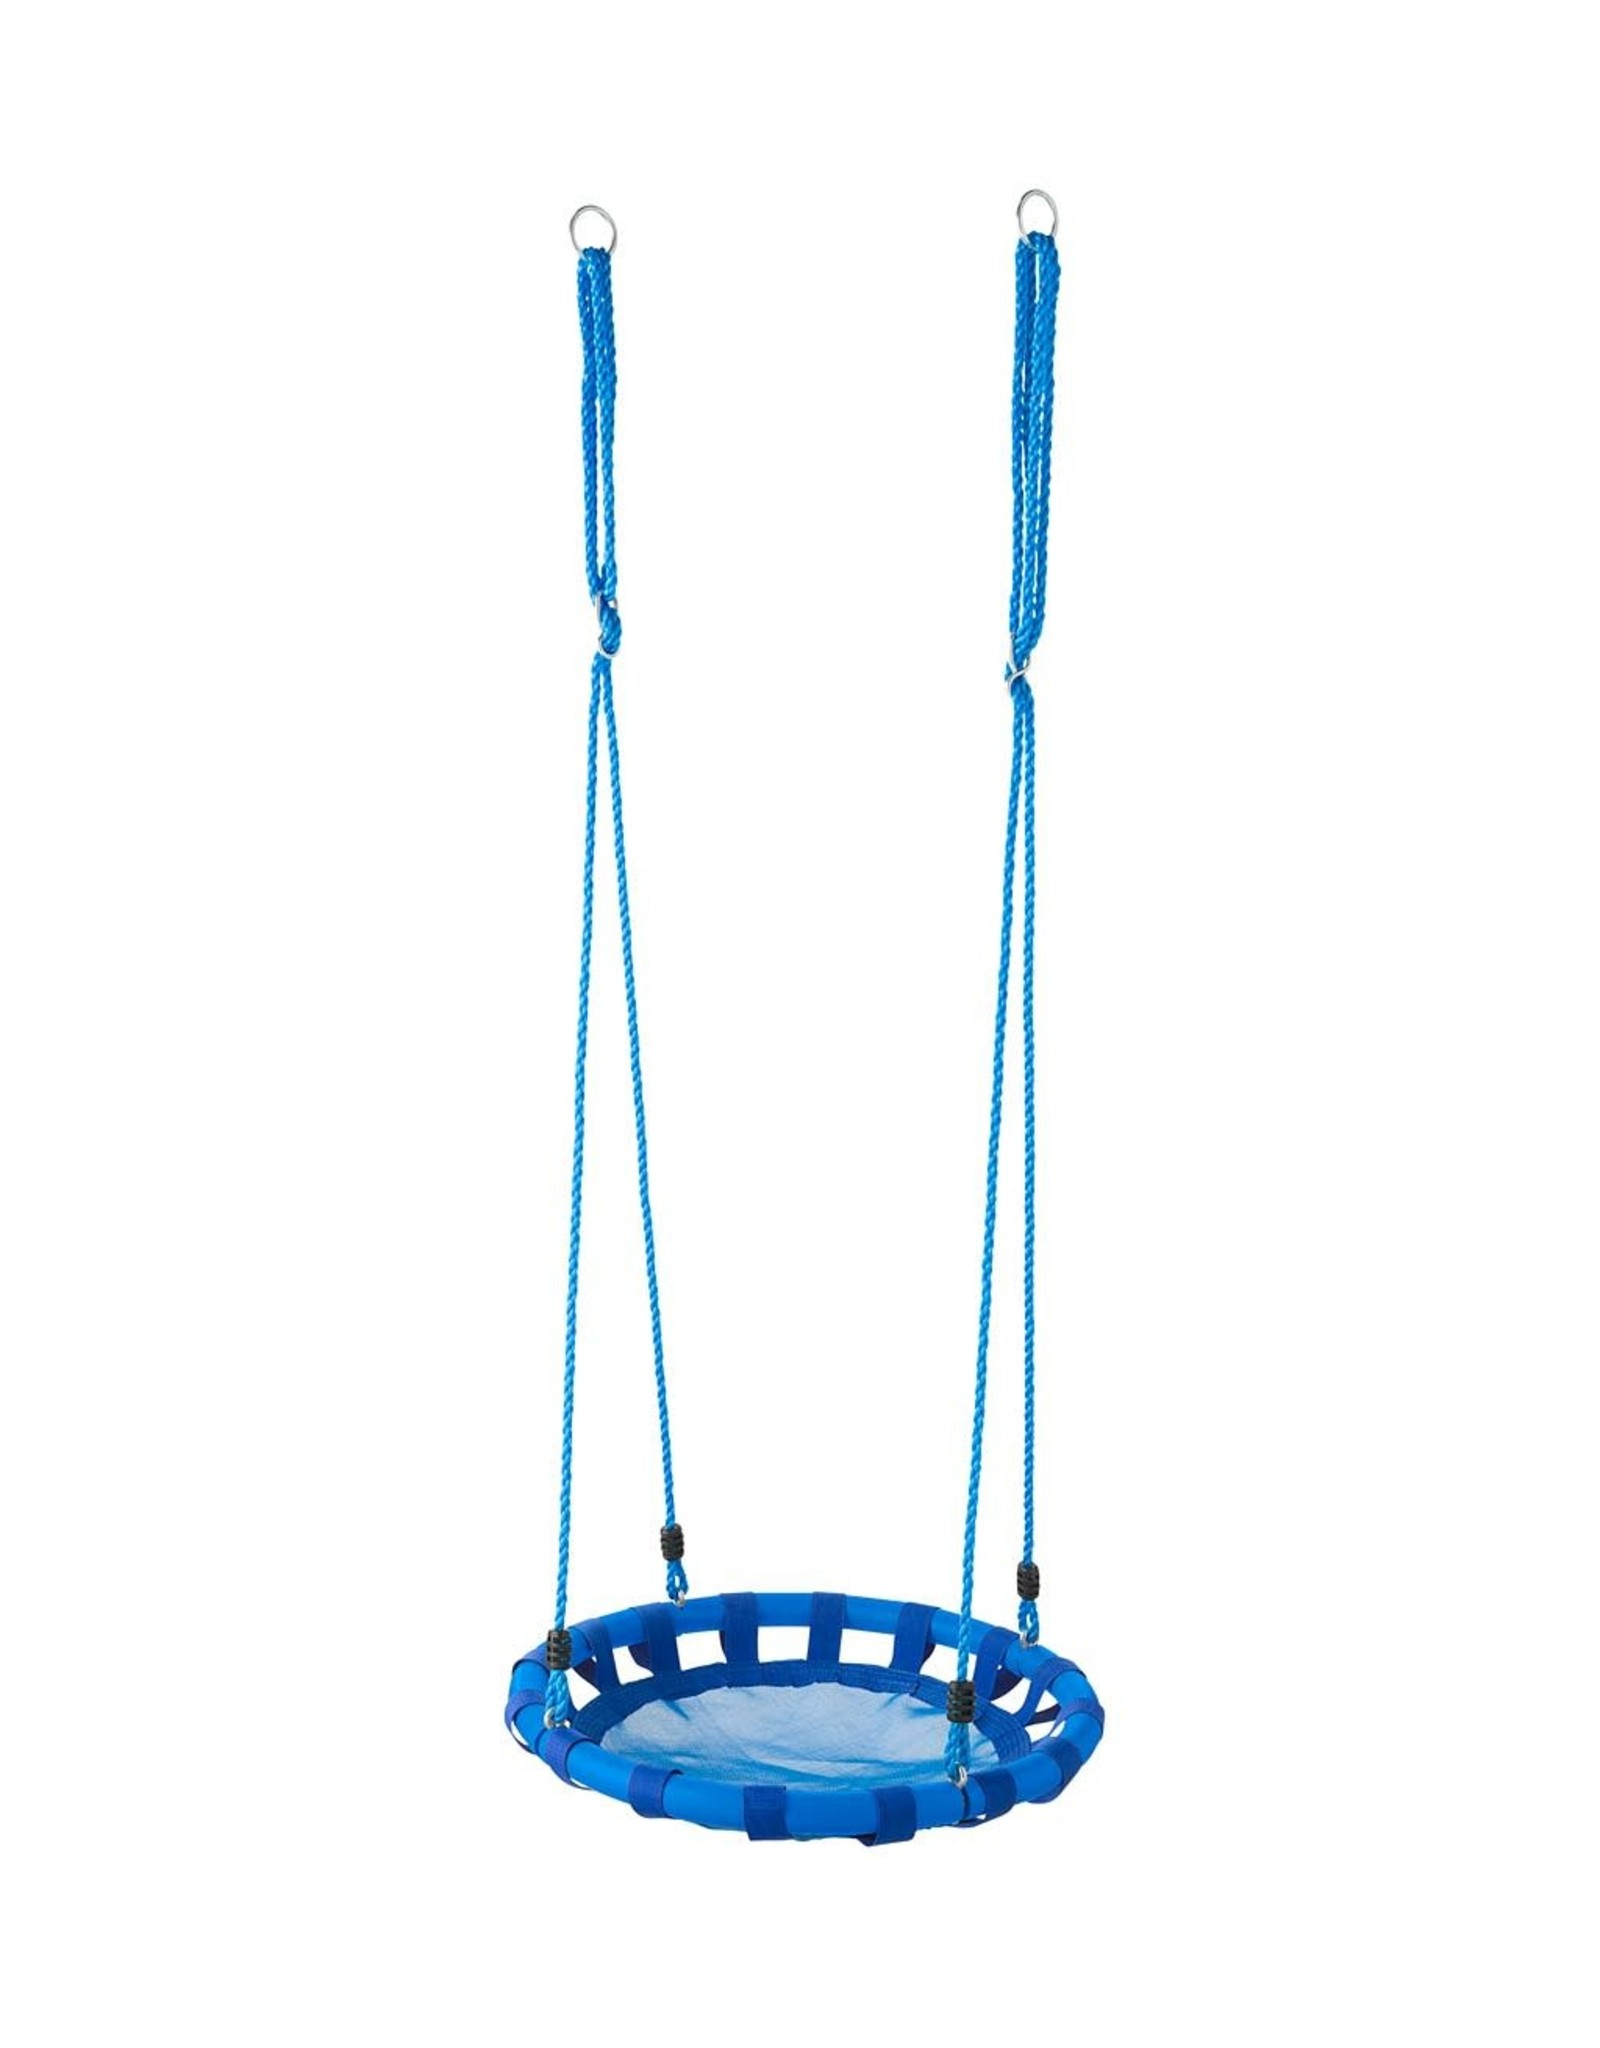 HearthSong ColorBurst Round Platform Tree Swing